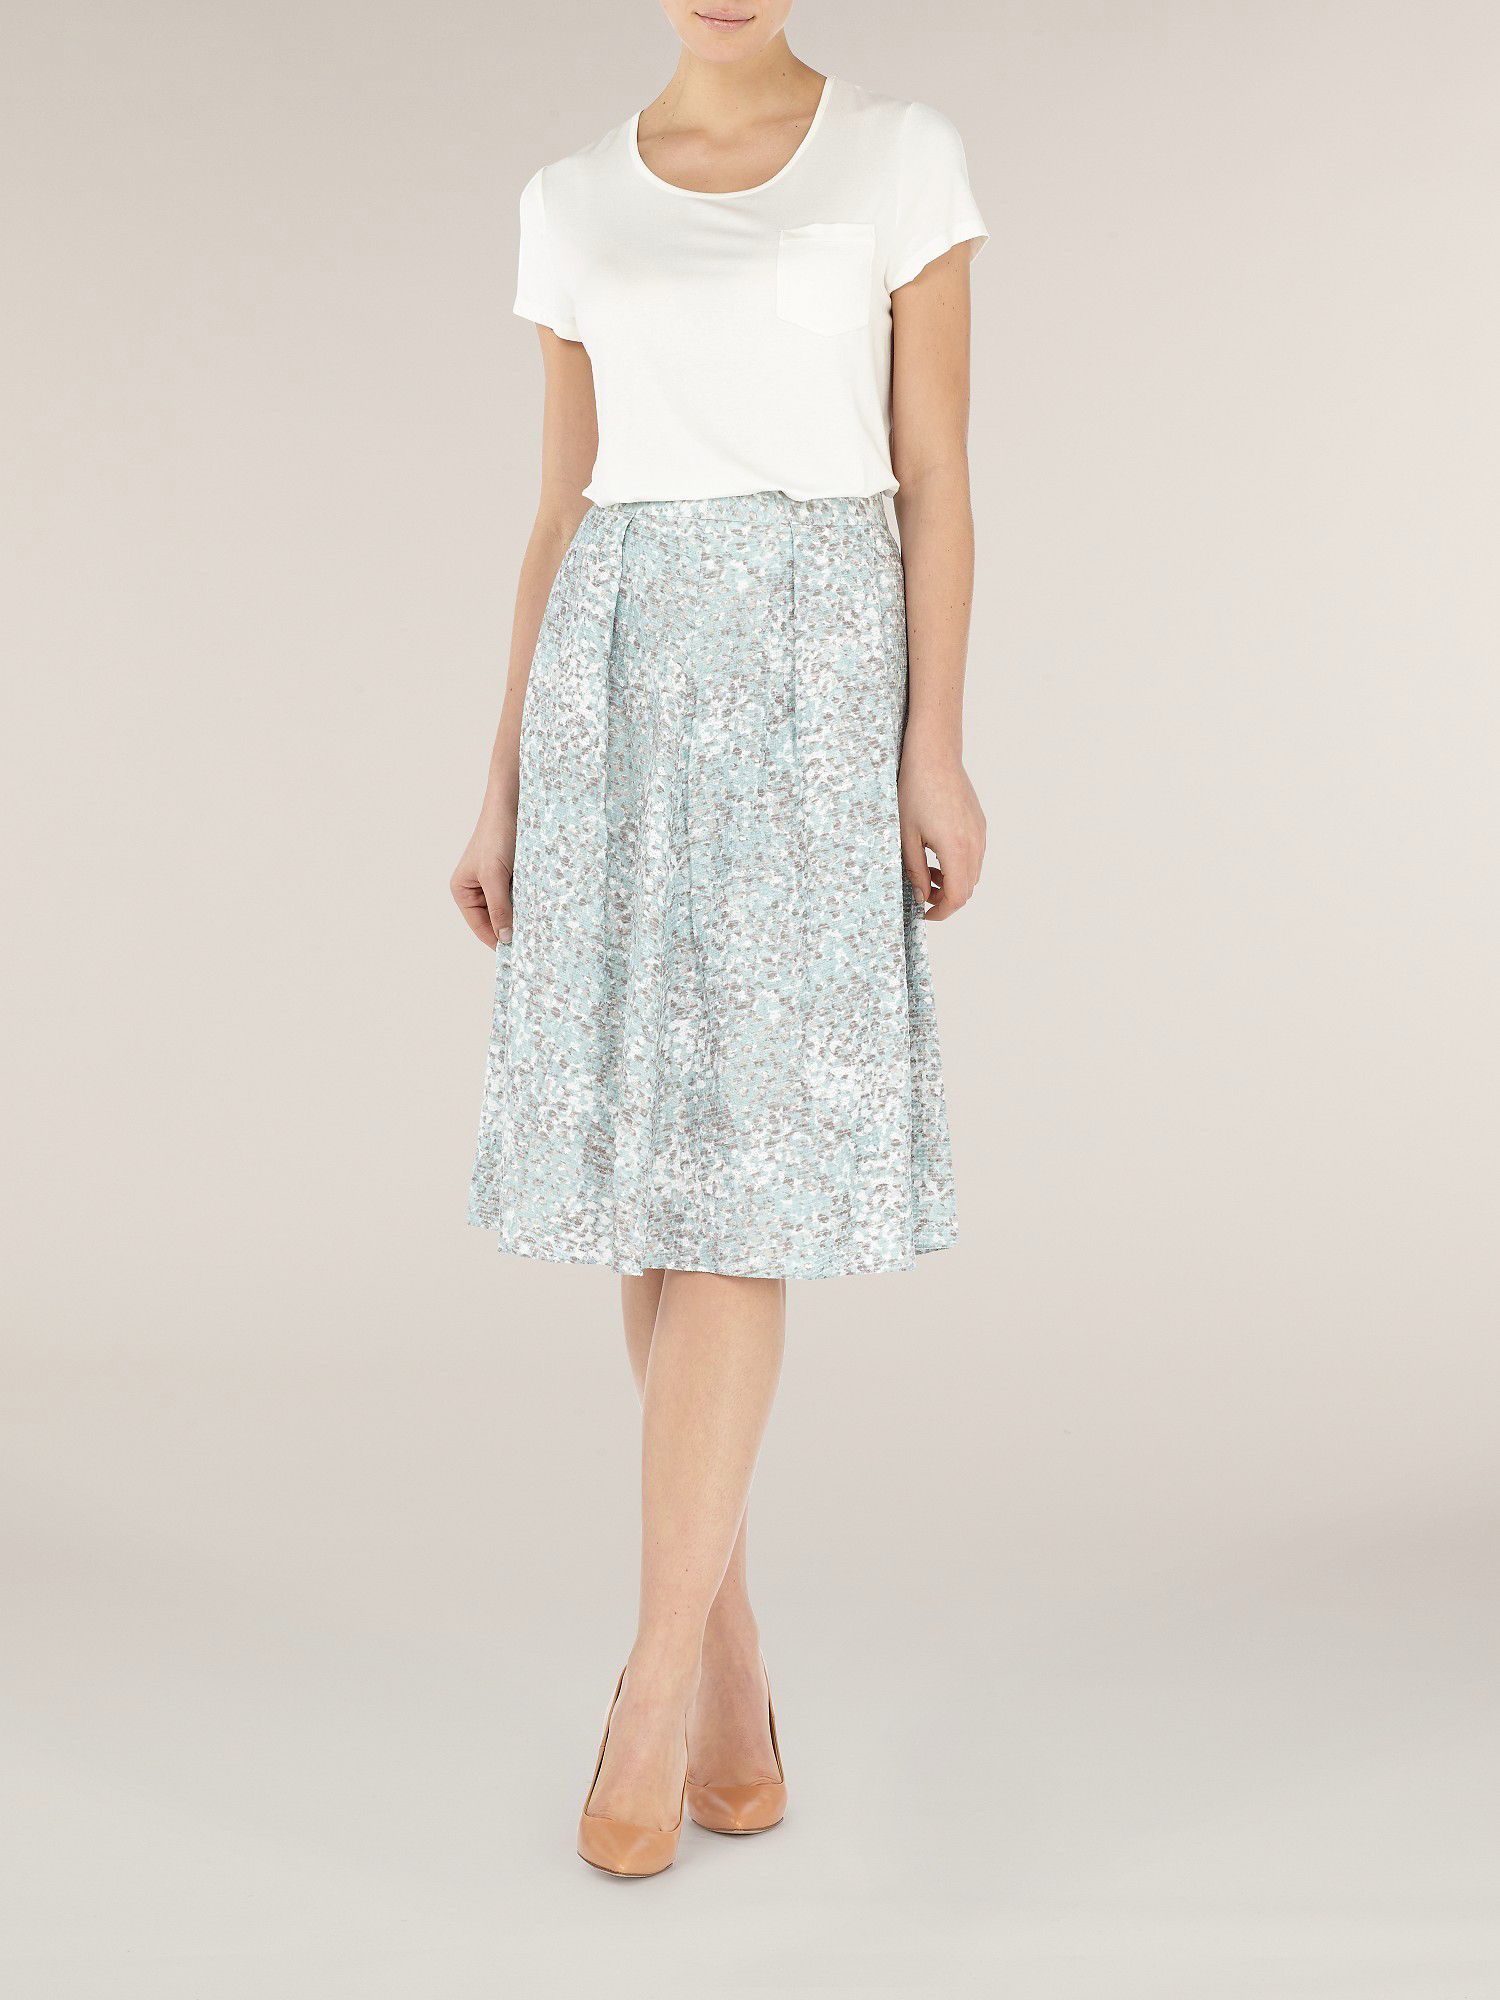 Duck egg mosaic printed skirt